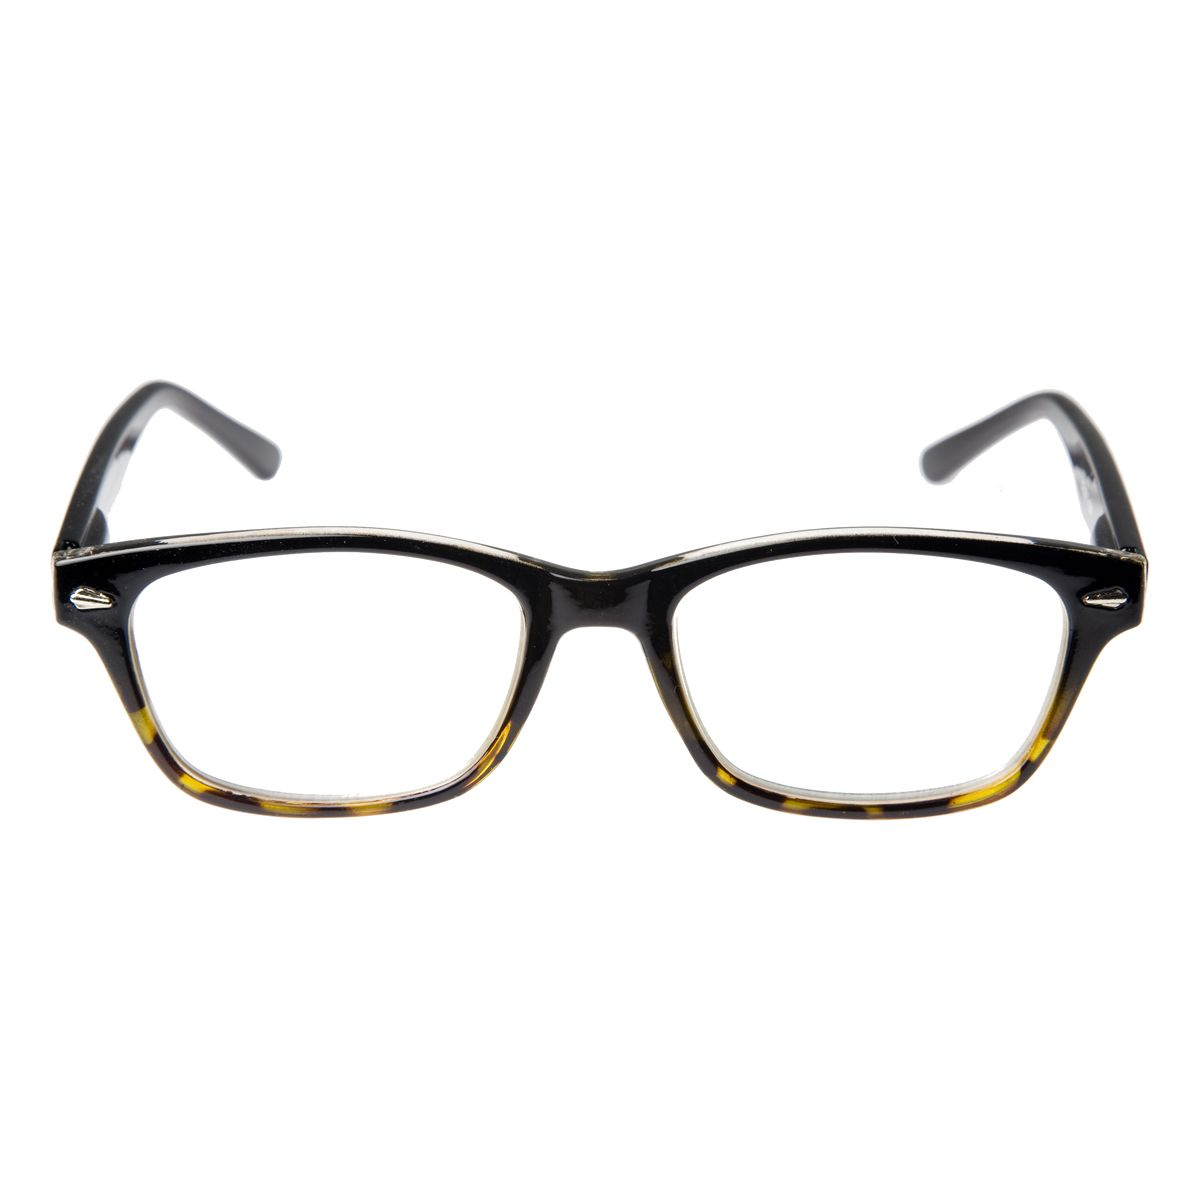 03880ad3a22 Green) Computer Eyed Readers Accsreading Glasses